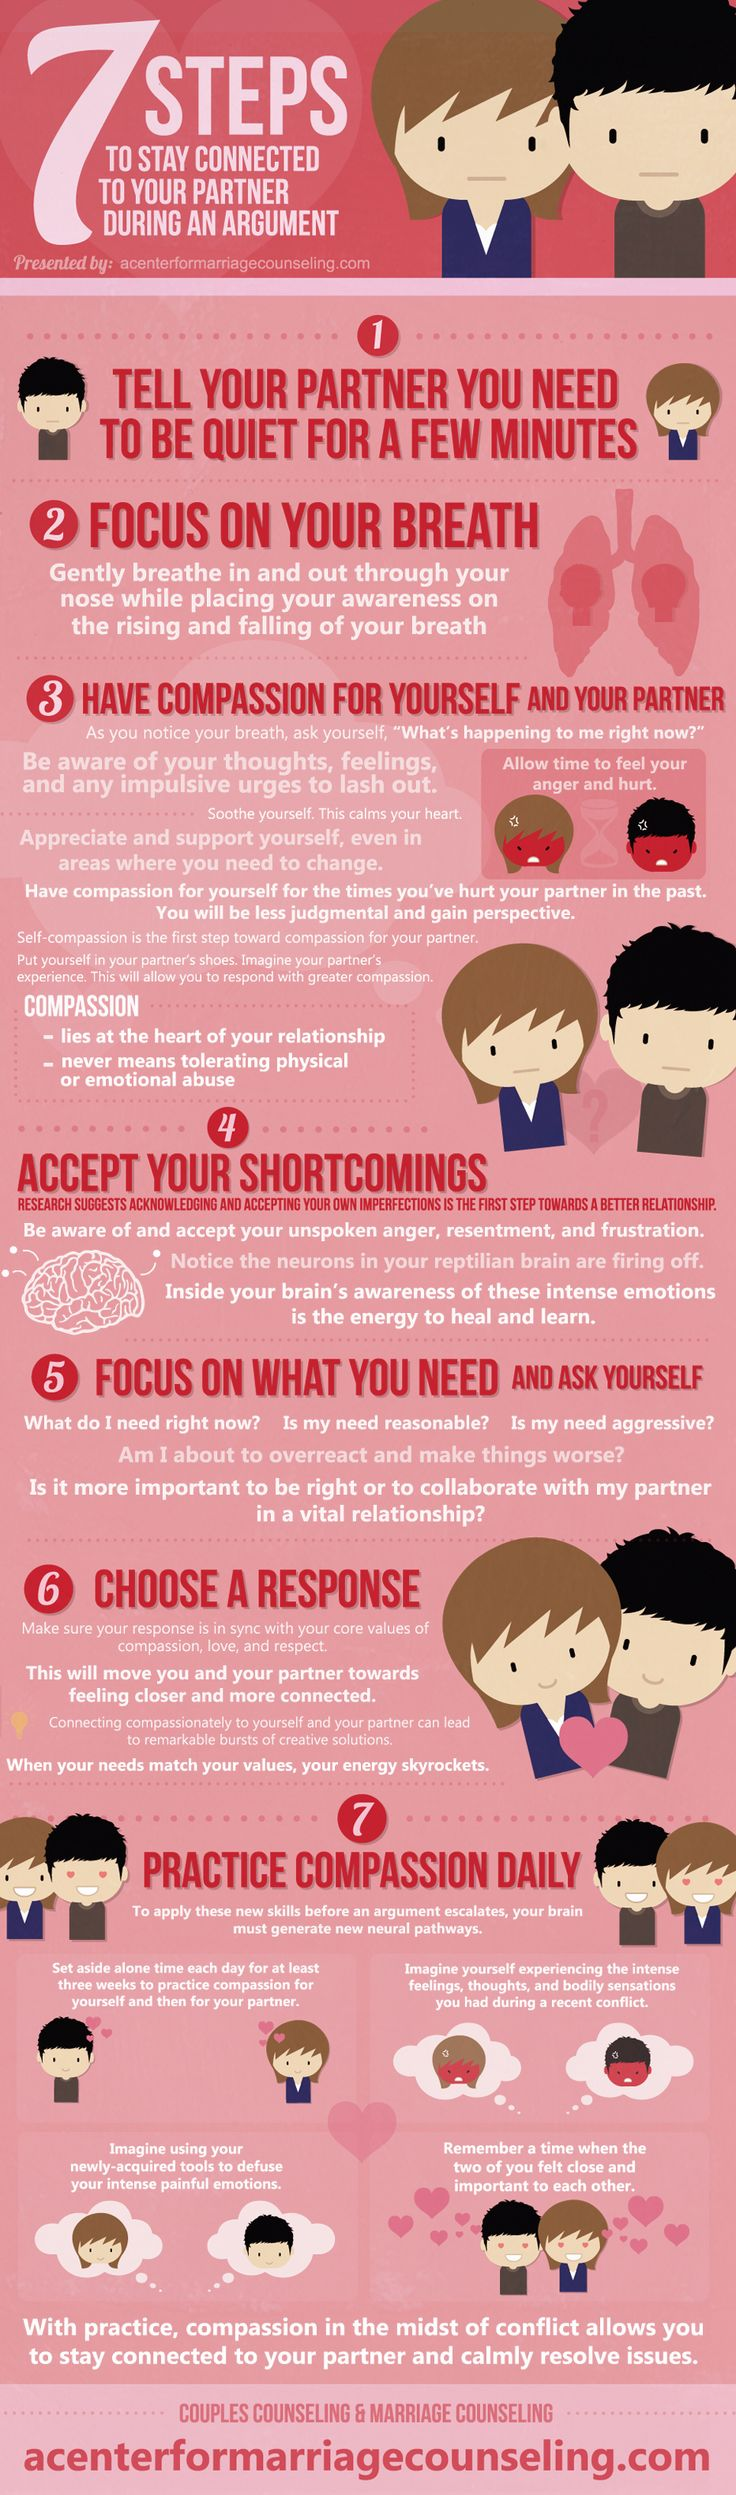 7 Steps To Stay Connected To Your Partner During An Argument   #Infographic #Argument #Relationships #Love